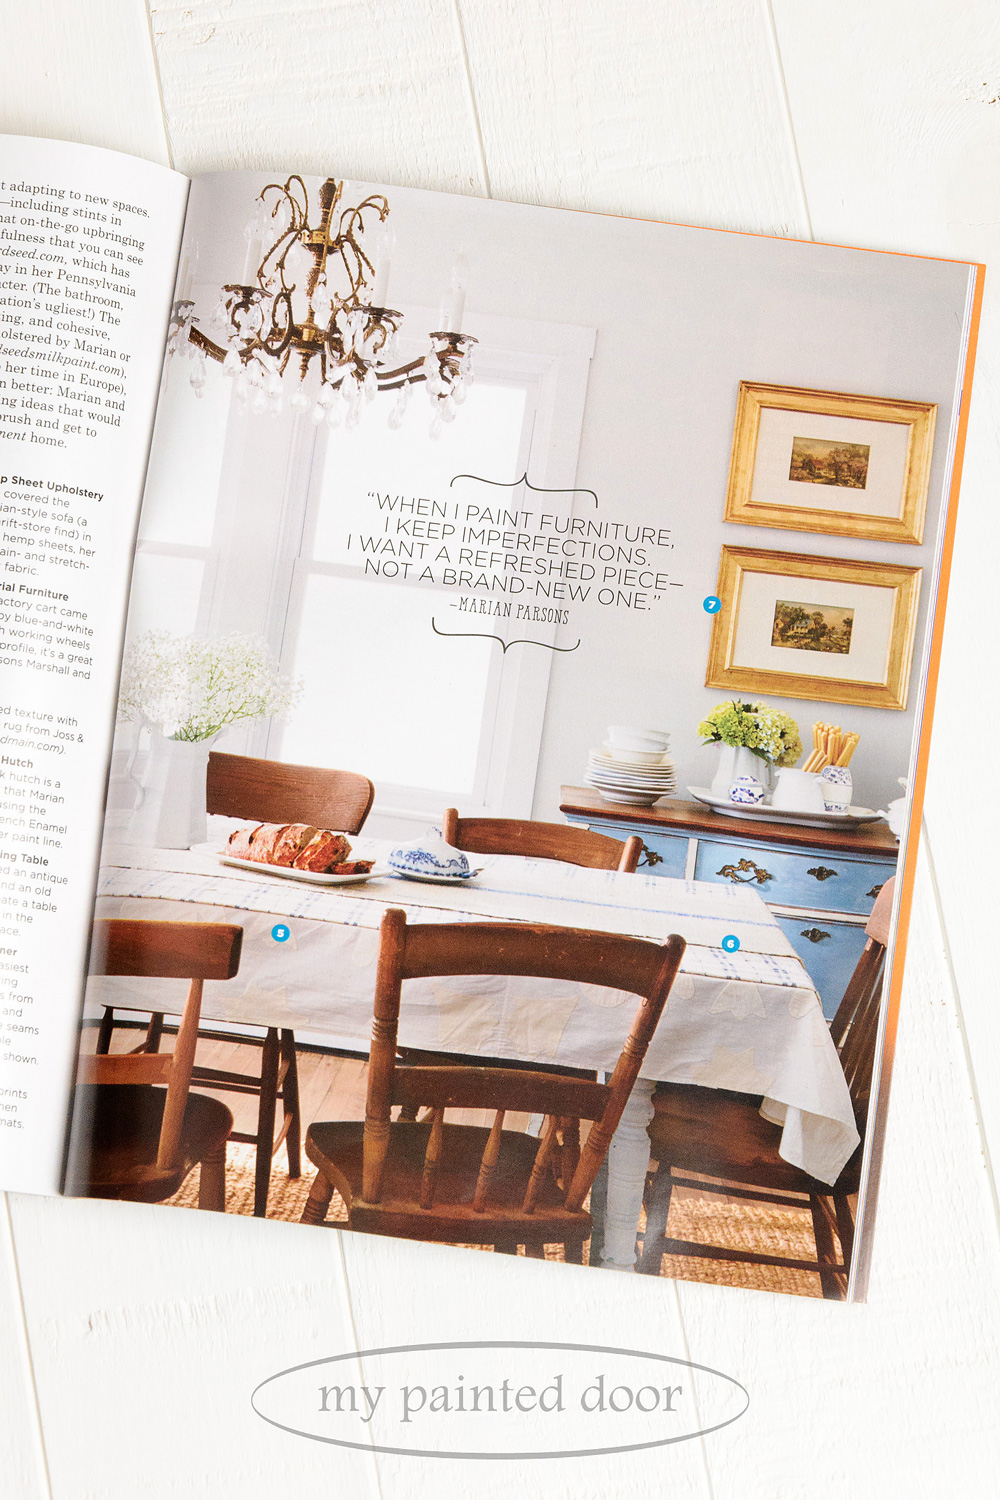 Miss Mustard Seed is featured in Country Living magazine.